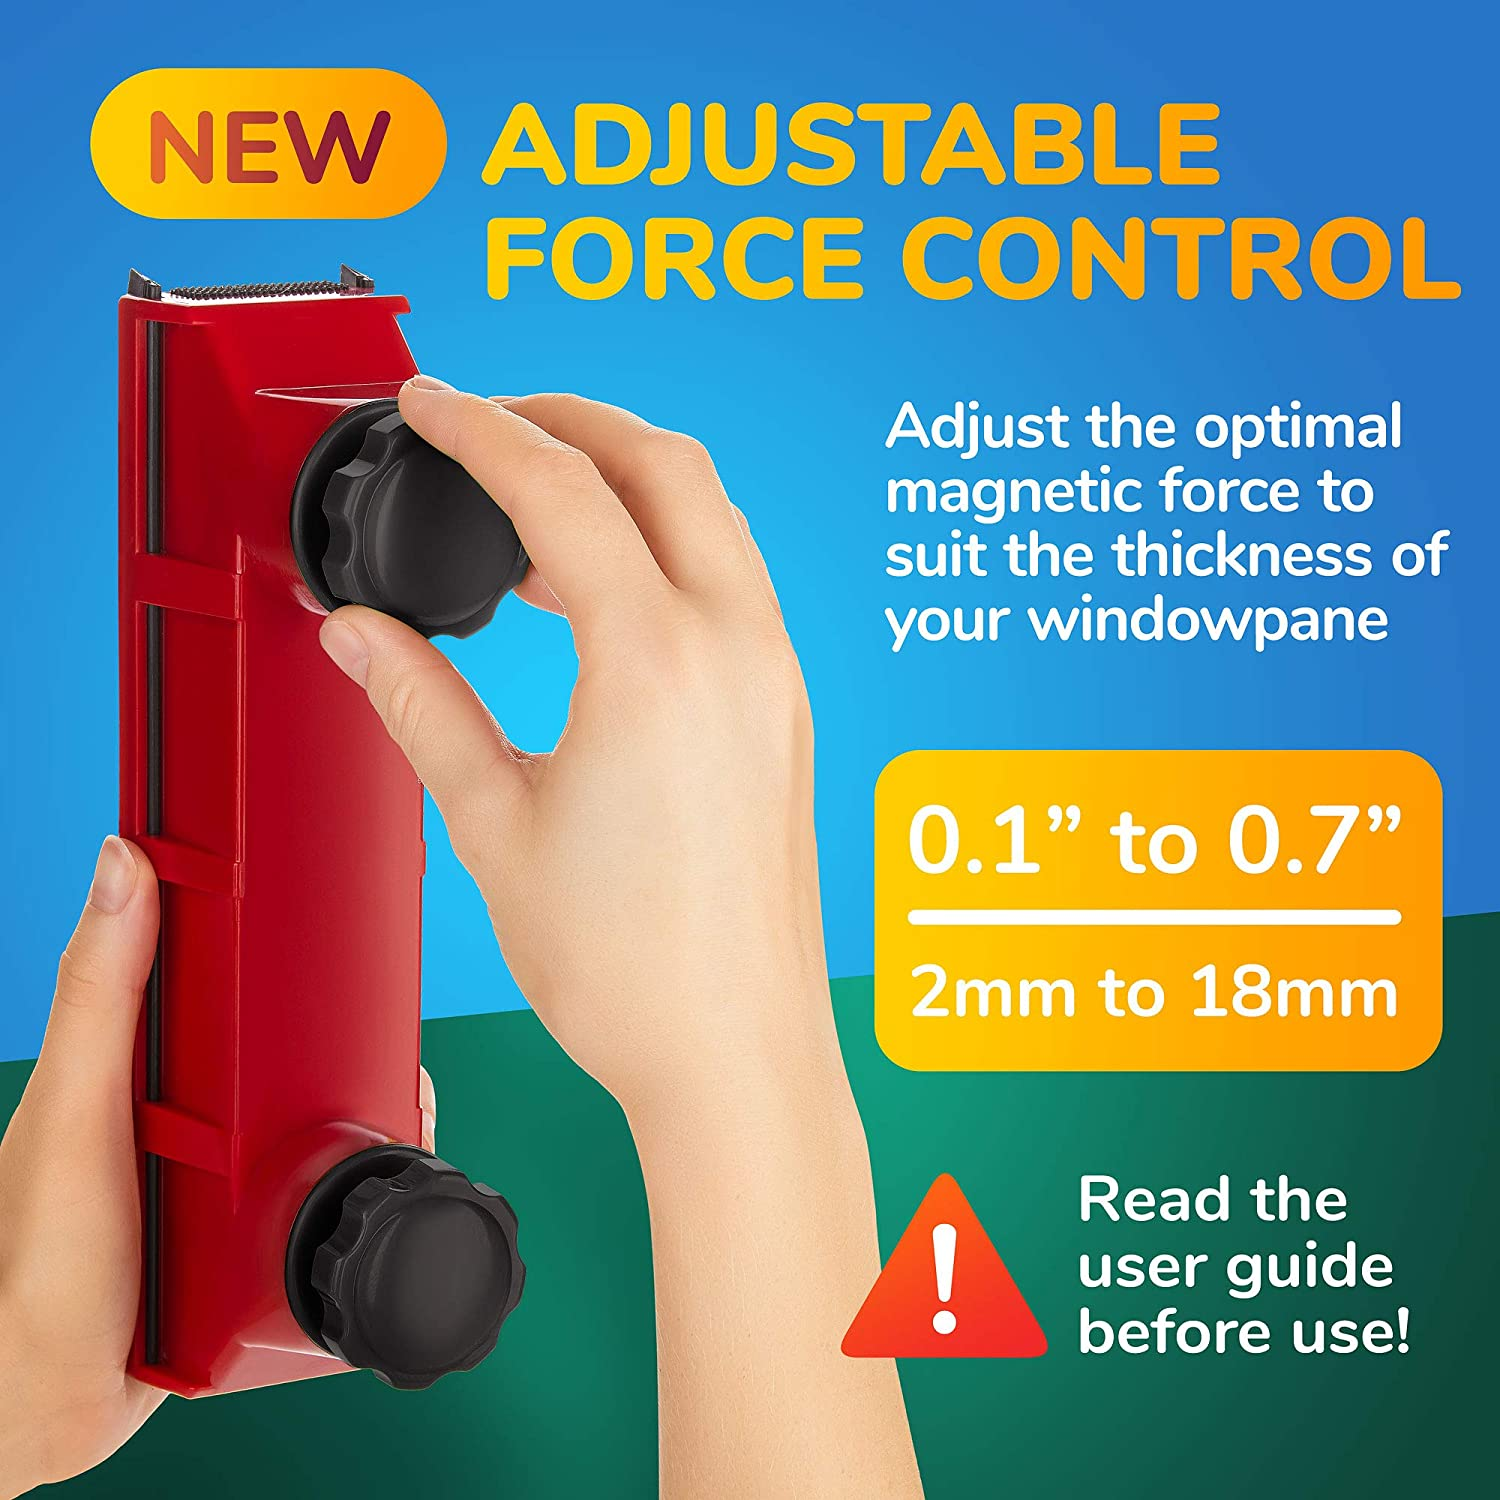 Tyroler Bright Tools Magnetic Window Cleaner Single or Double Glazed Window 0.08-0.7 Indoor and Outdoor Glass Pane Cleaning Adjustable Magnet Force The Glider D-2 AFC